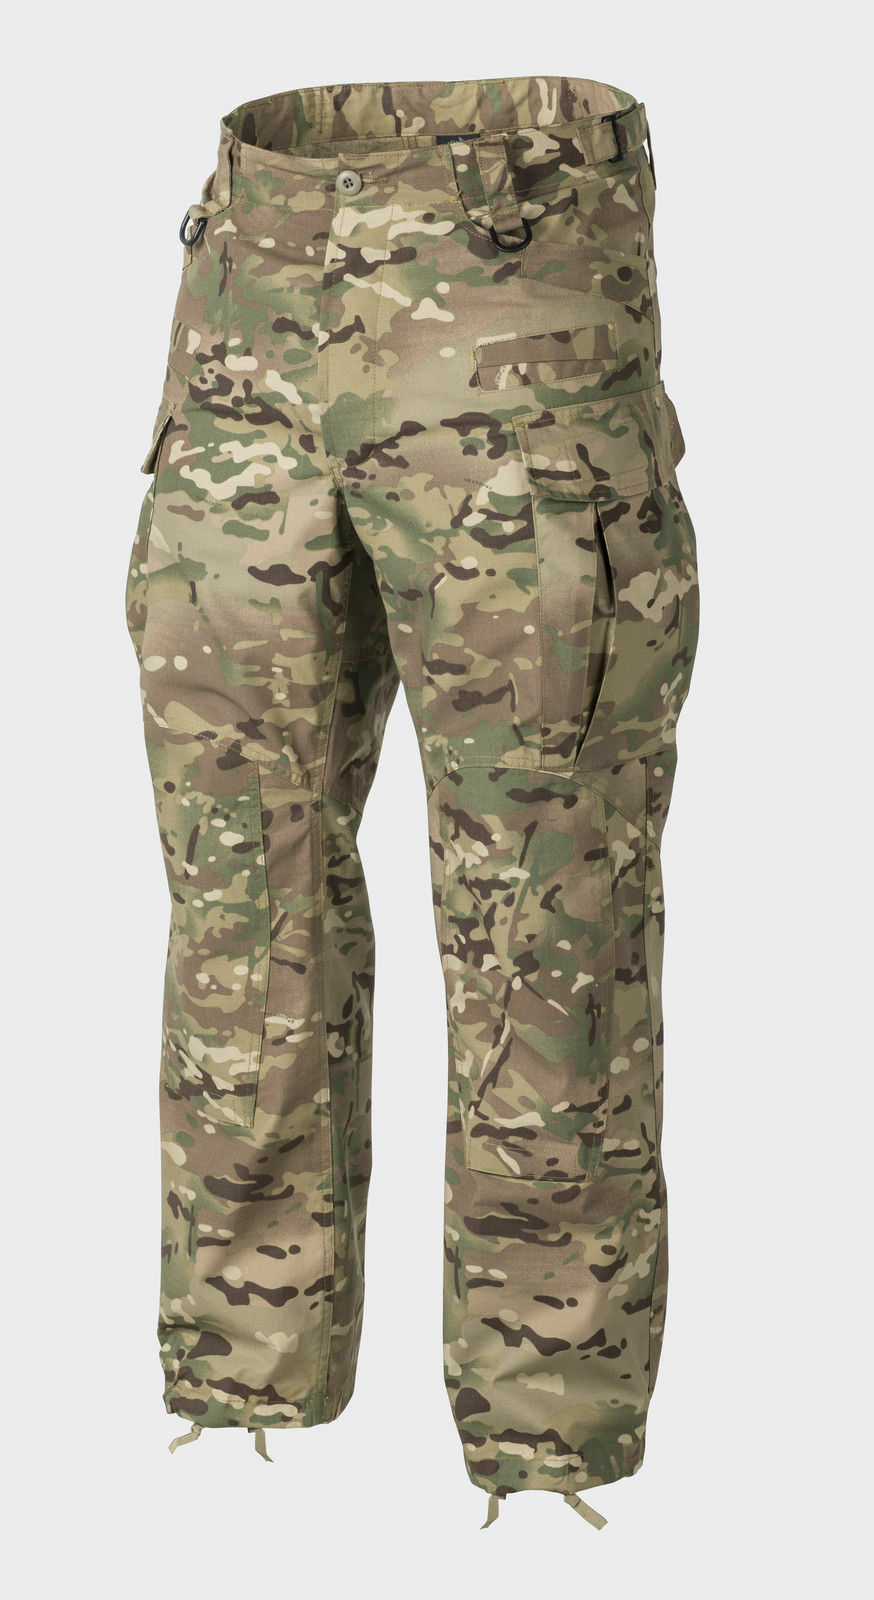 Helikon TEX Tactical SFU NEXT Tactical TEX Combat Pantaloni Camogrom Army Pants Tarn XLarge e763ed